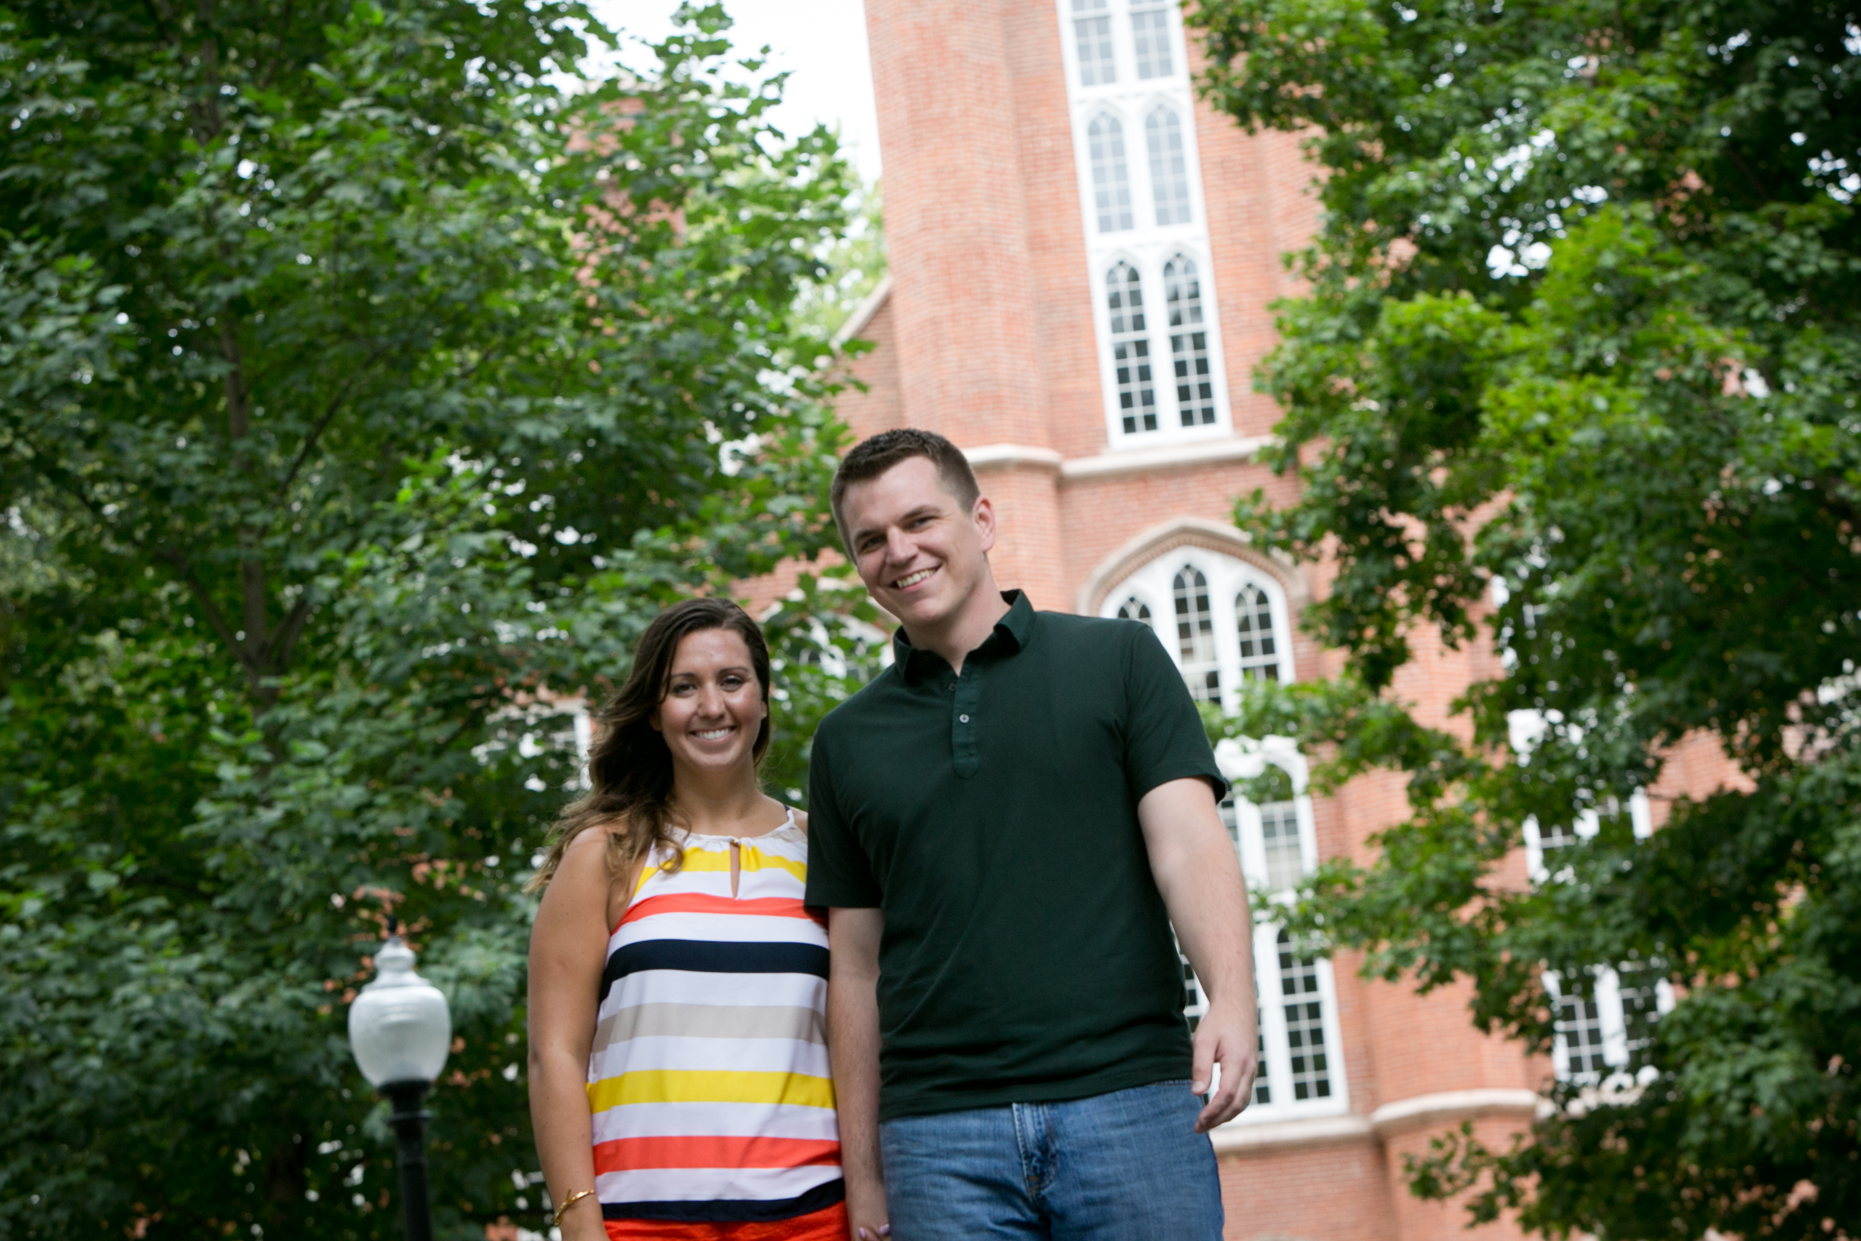 Laura and Aaron hold hands in front of a brick cathedral